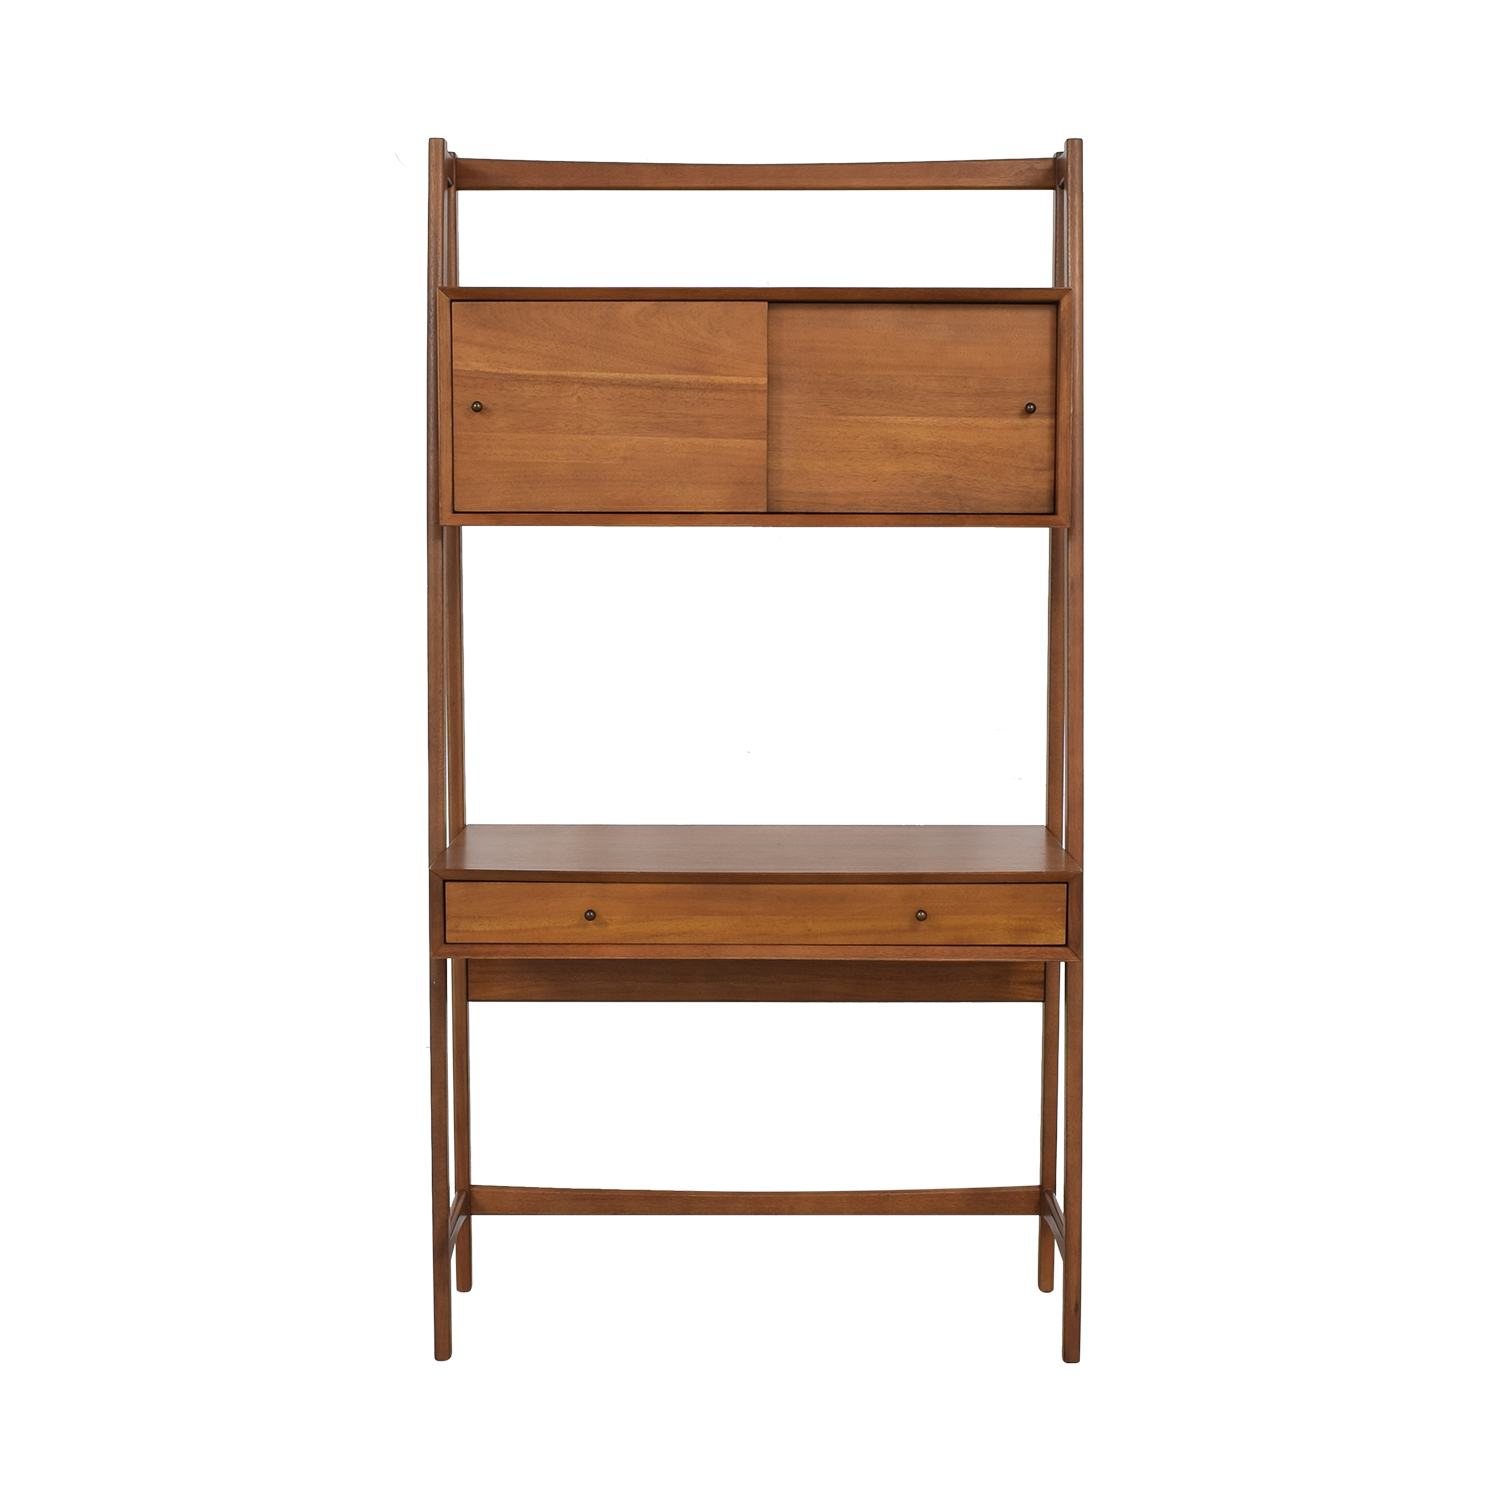 West Elm West Elm Mid-Century Wall Desk dimensions